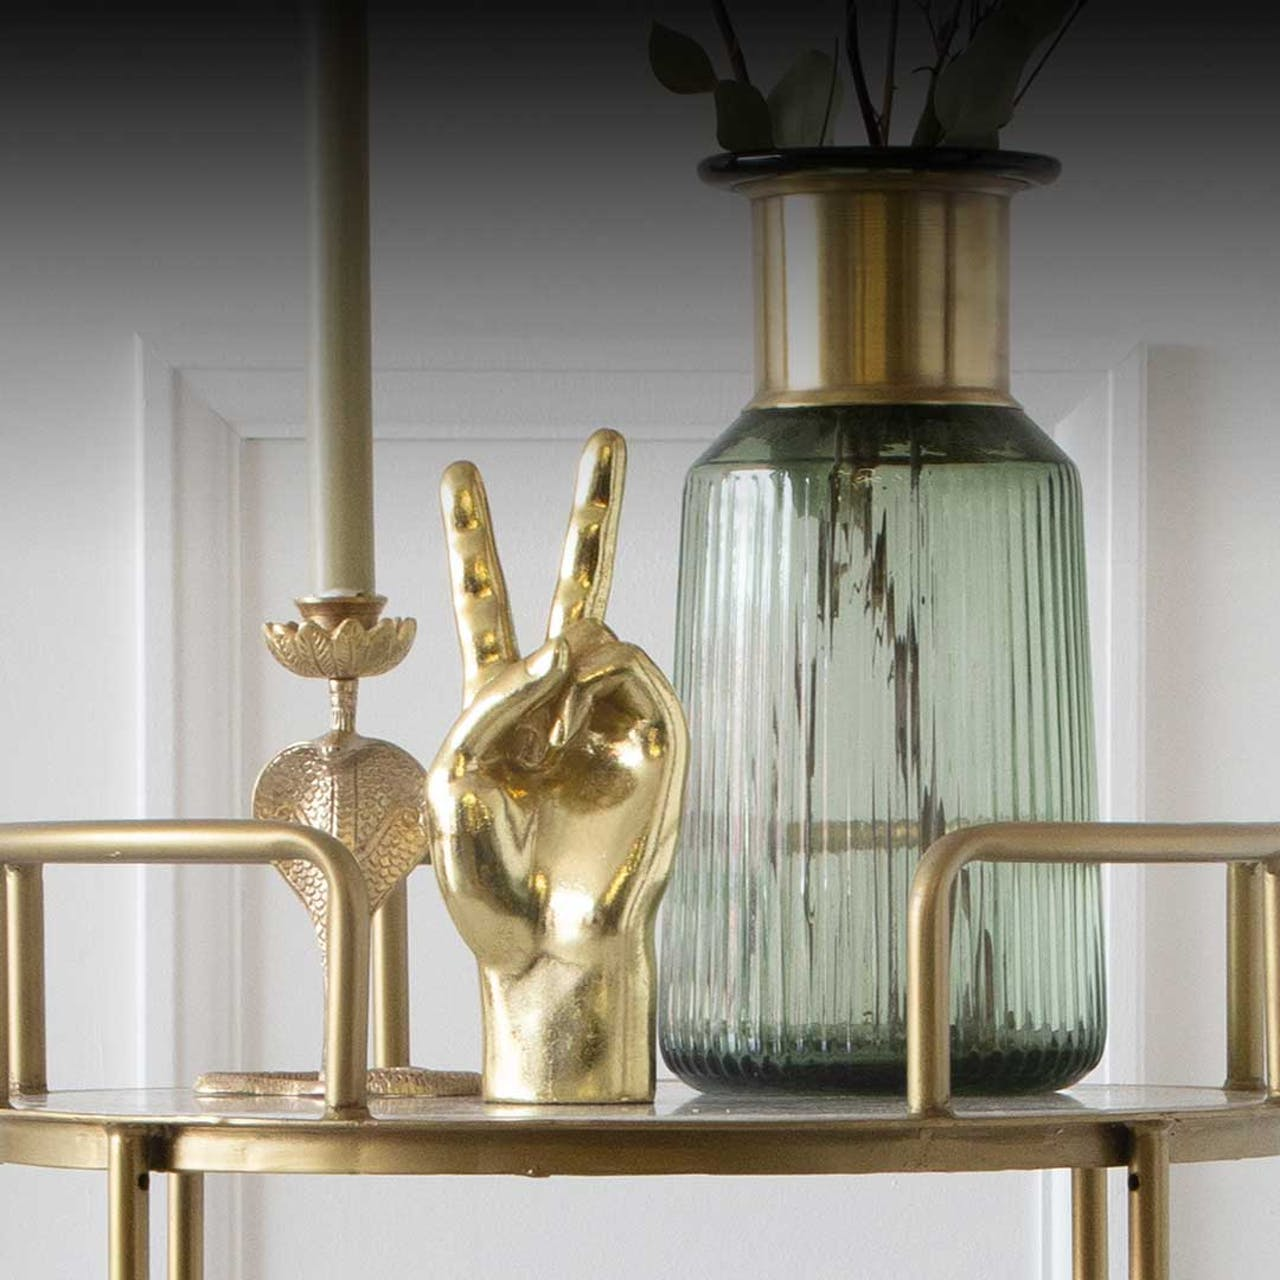 Gold Peace Hand Ornament on gold drinks trolley